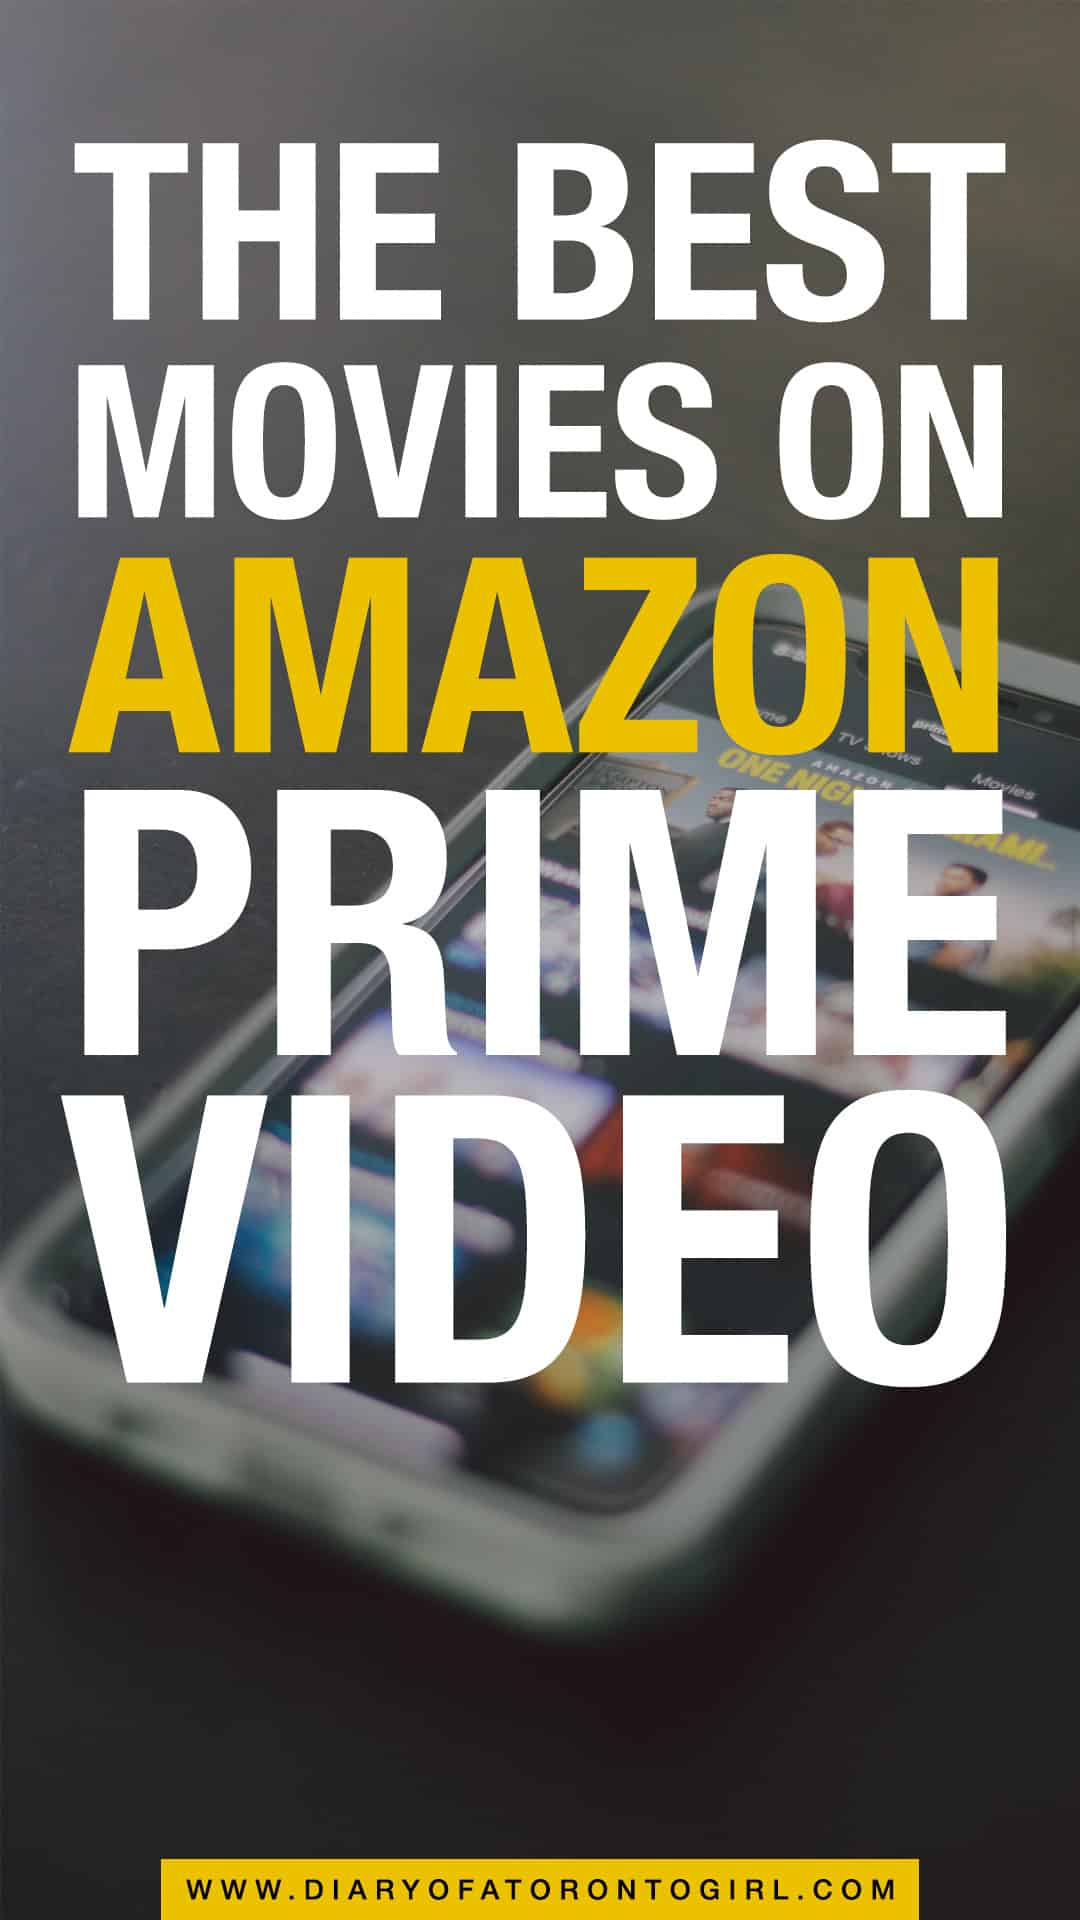 Looking for things to watch on Amazon Prime Video in Canada? Here are some of the best movies and films to binge-watch for my fellow Canadians, no matter what genres you're into!